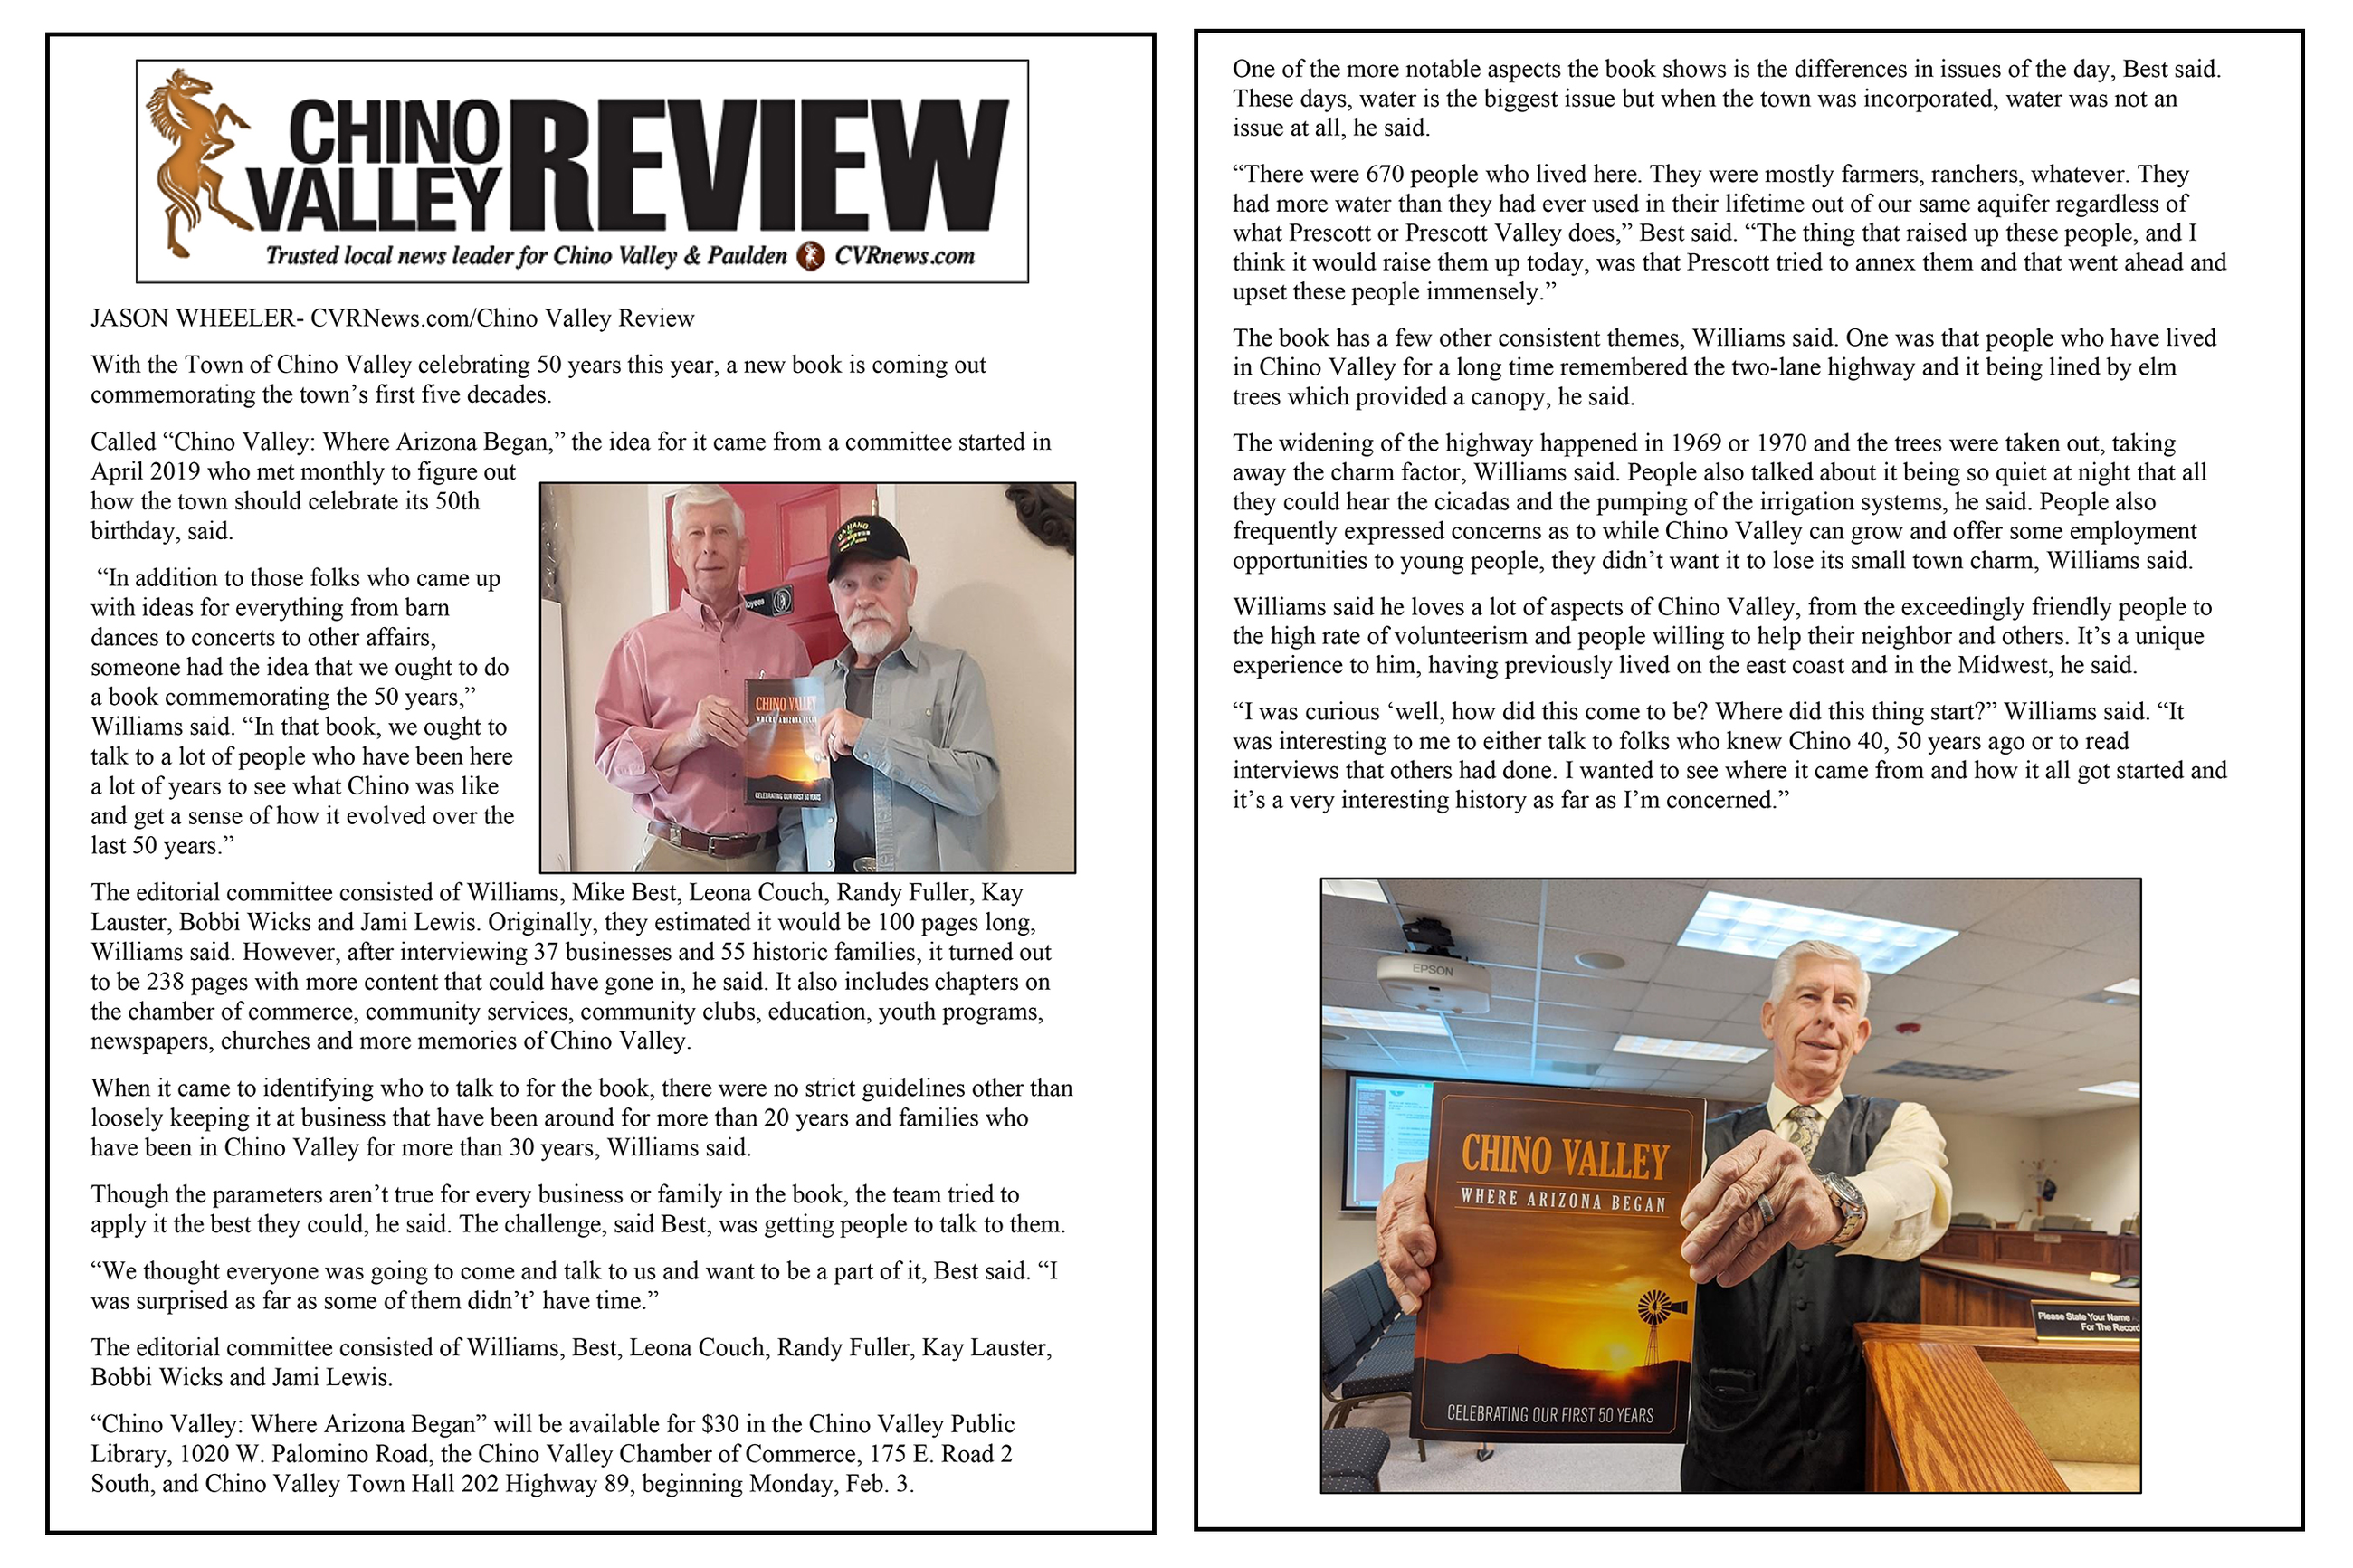 Chino Valley Review 50th Anniversary Article